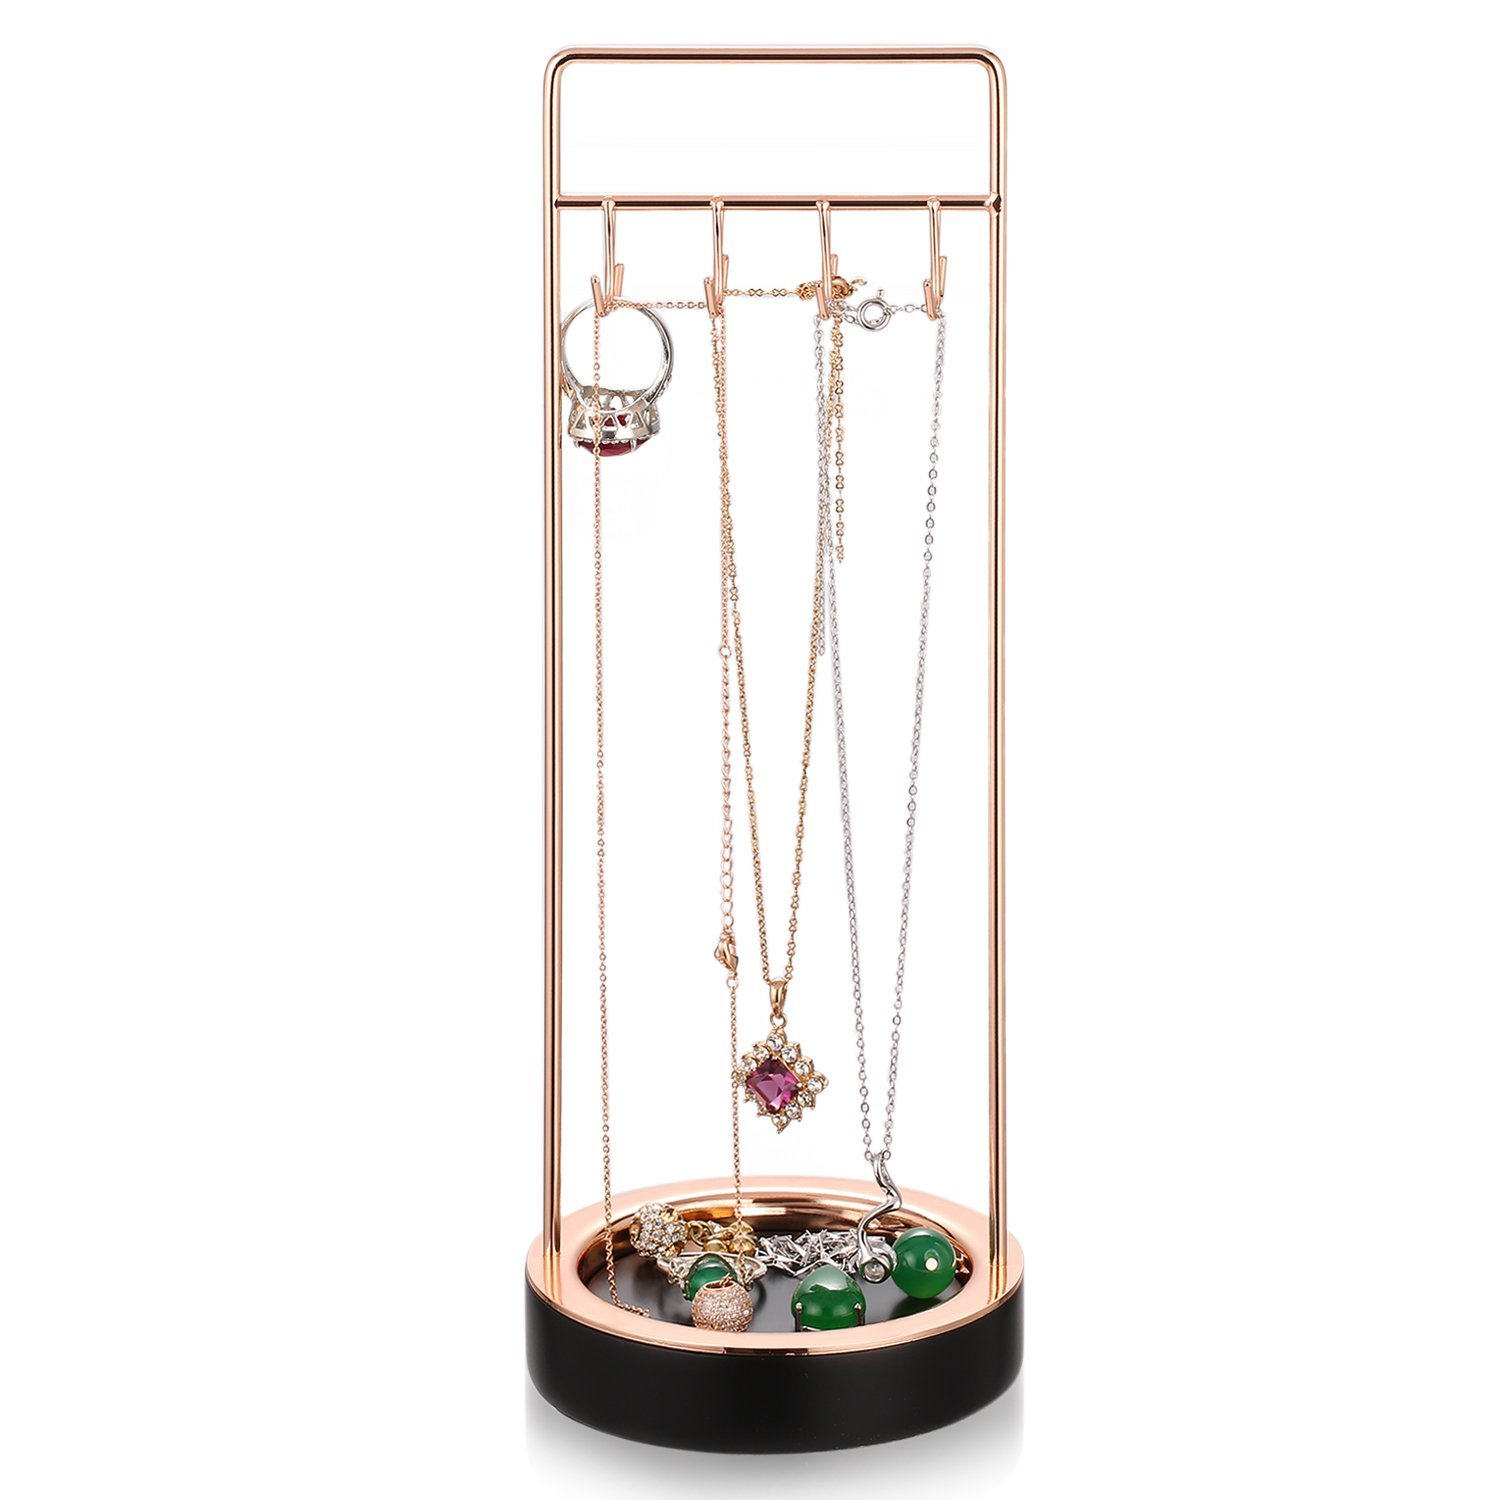 Black Resin Rose Gold Metal Jewelry Tree Stand Bracelet Necklace Organizer Display Rack Ring Tray